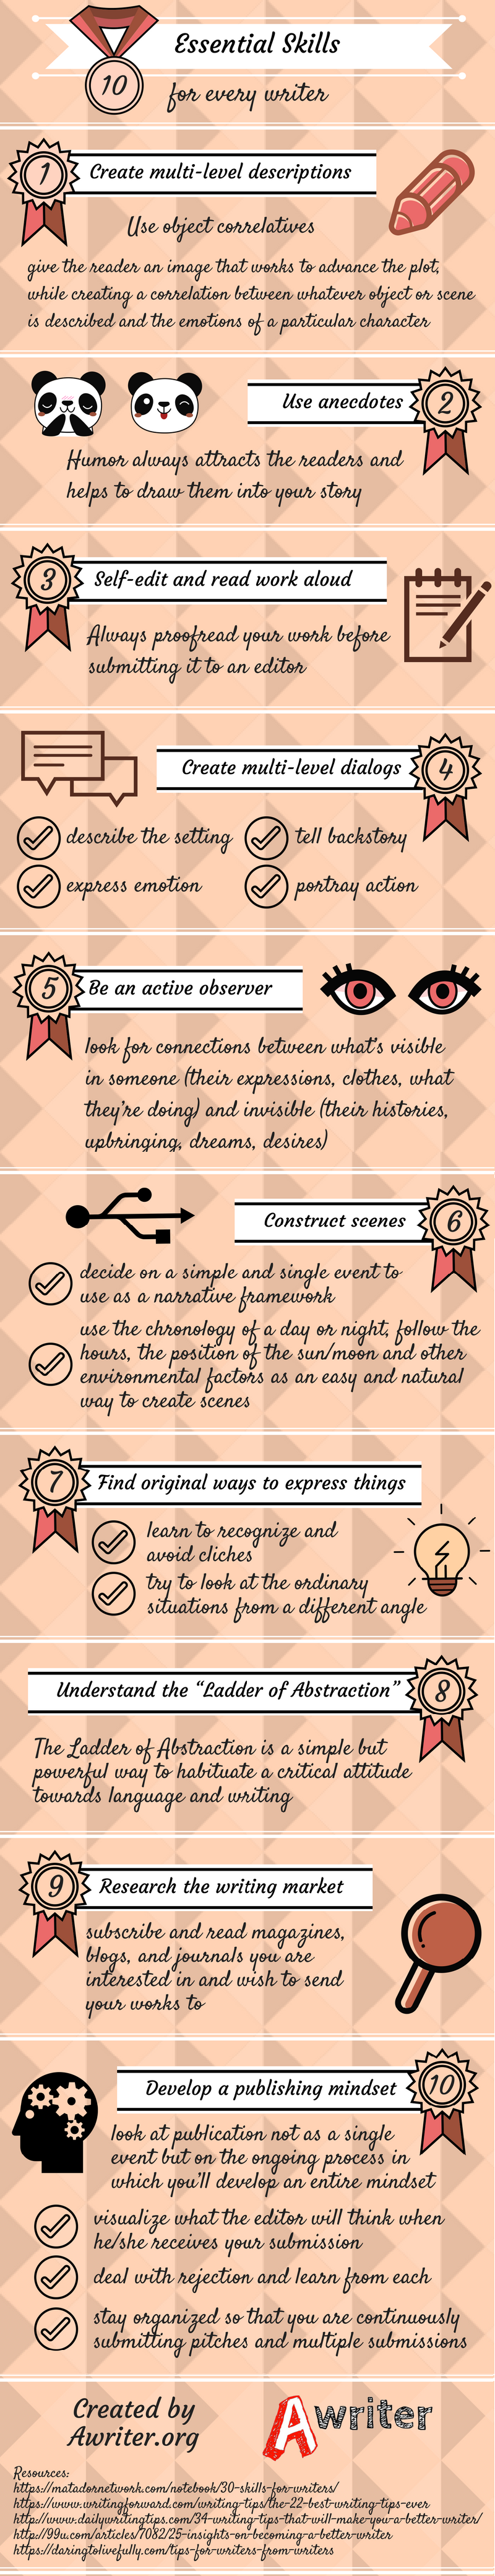 10 Essential Skills for Every Writer